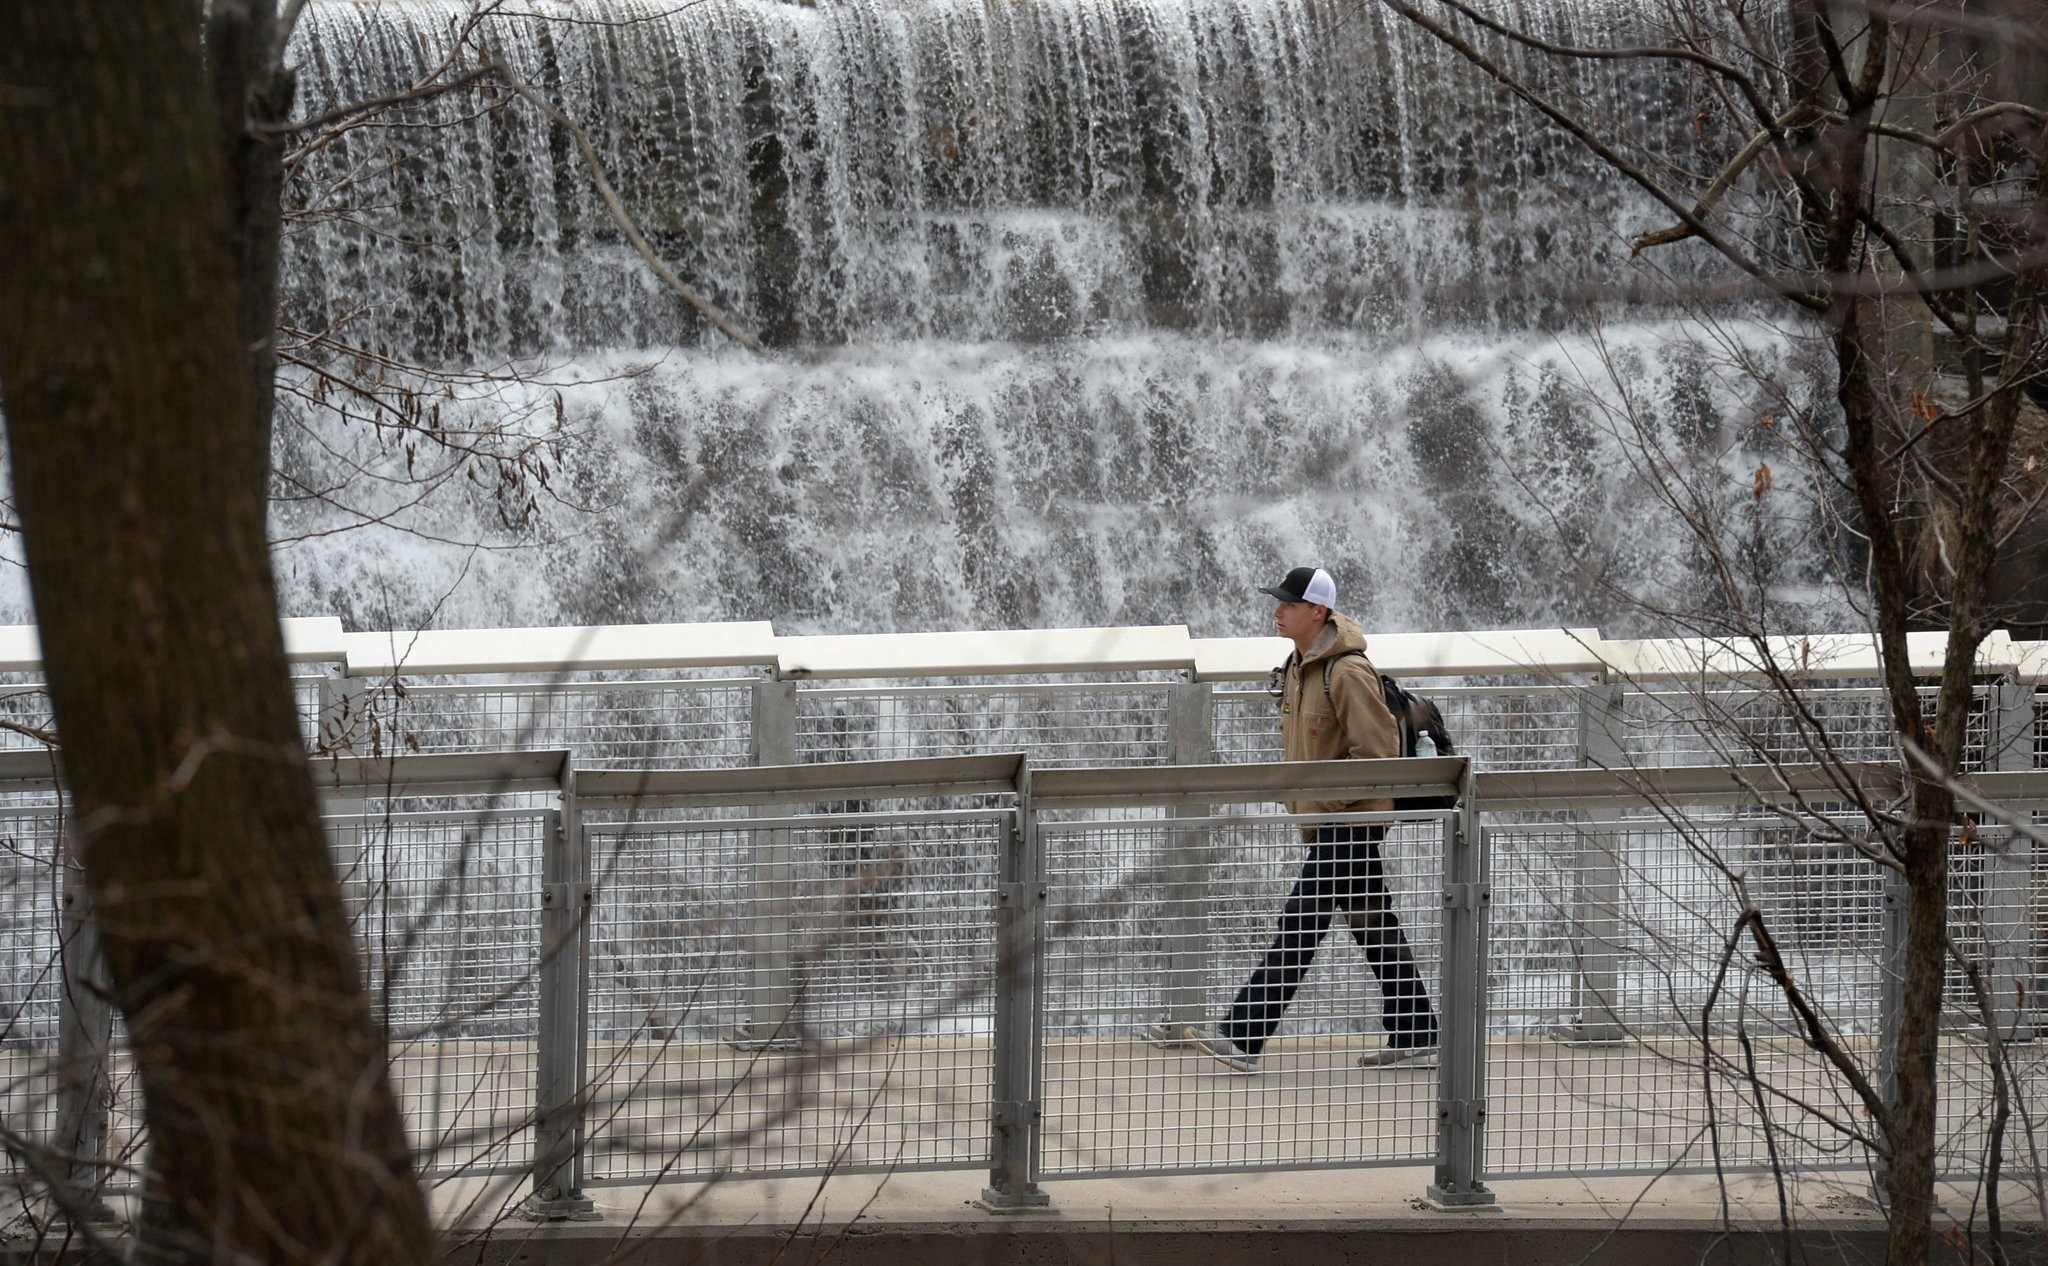 New York state has 7,000 dams: See which are near you and